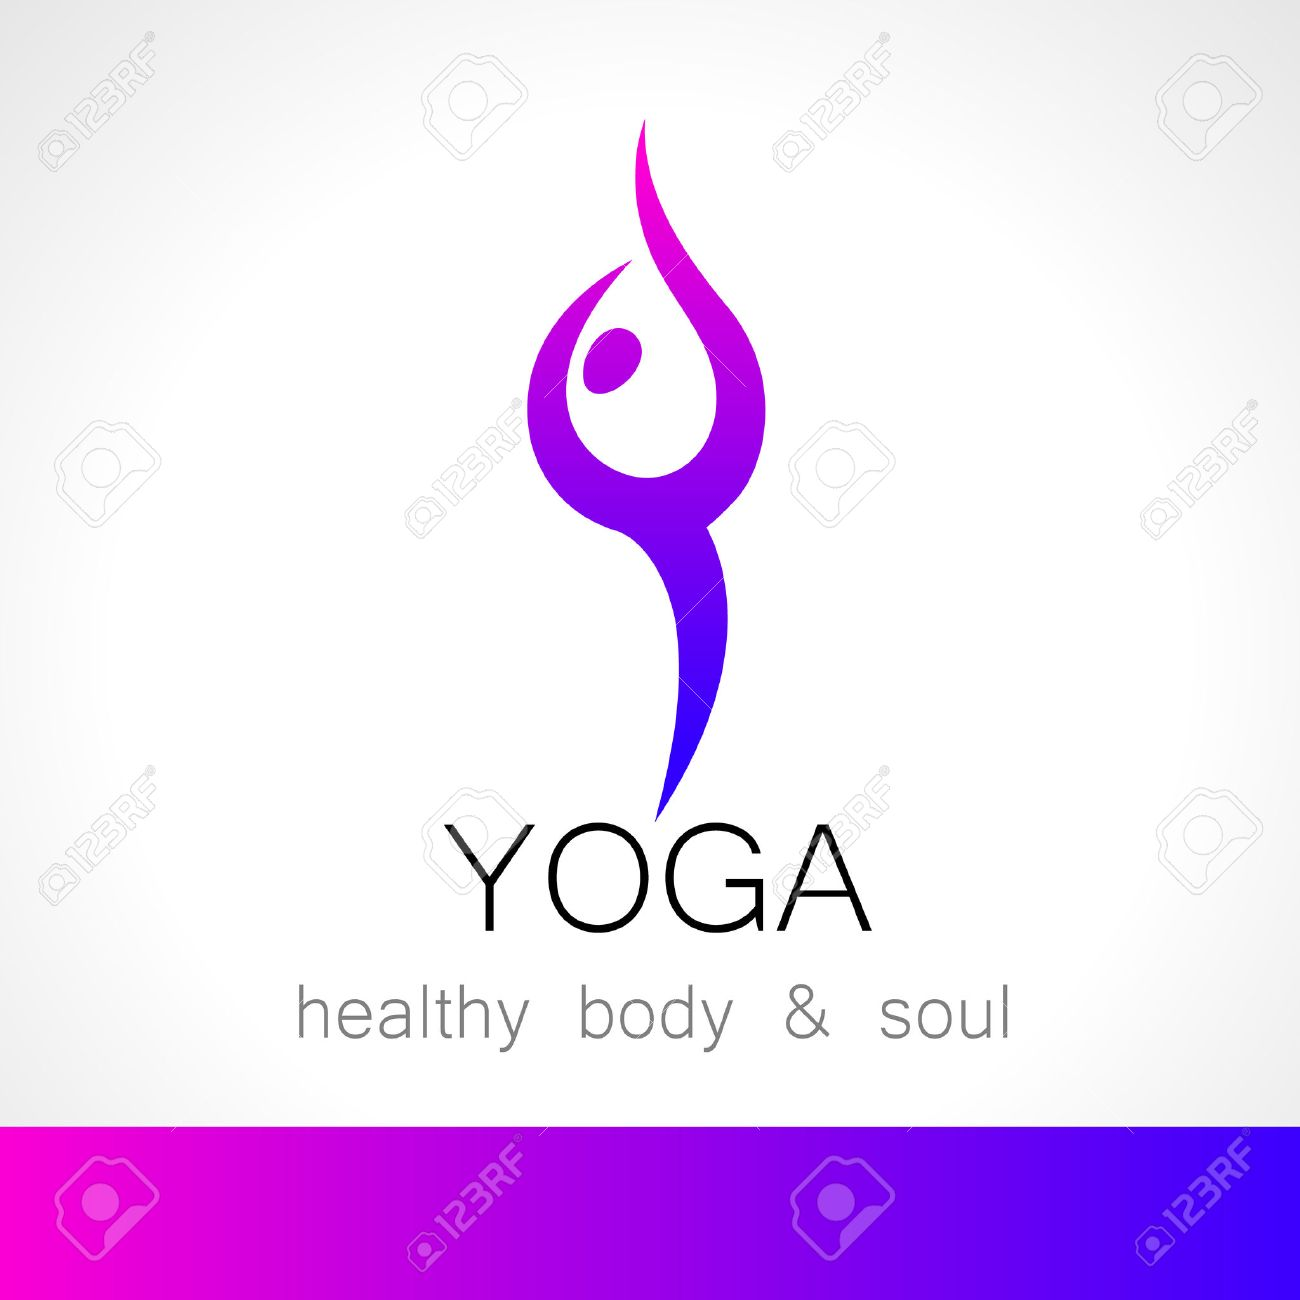 Yoga Logo Design Template Health Care Beauty Spa Relax Royalty Free Cliparts Vectors And Stock Illustration Image 43027278